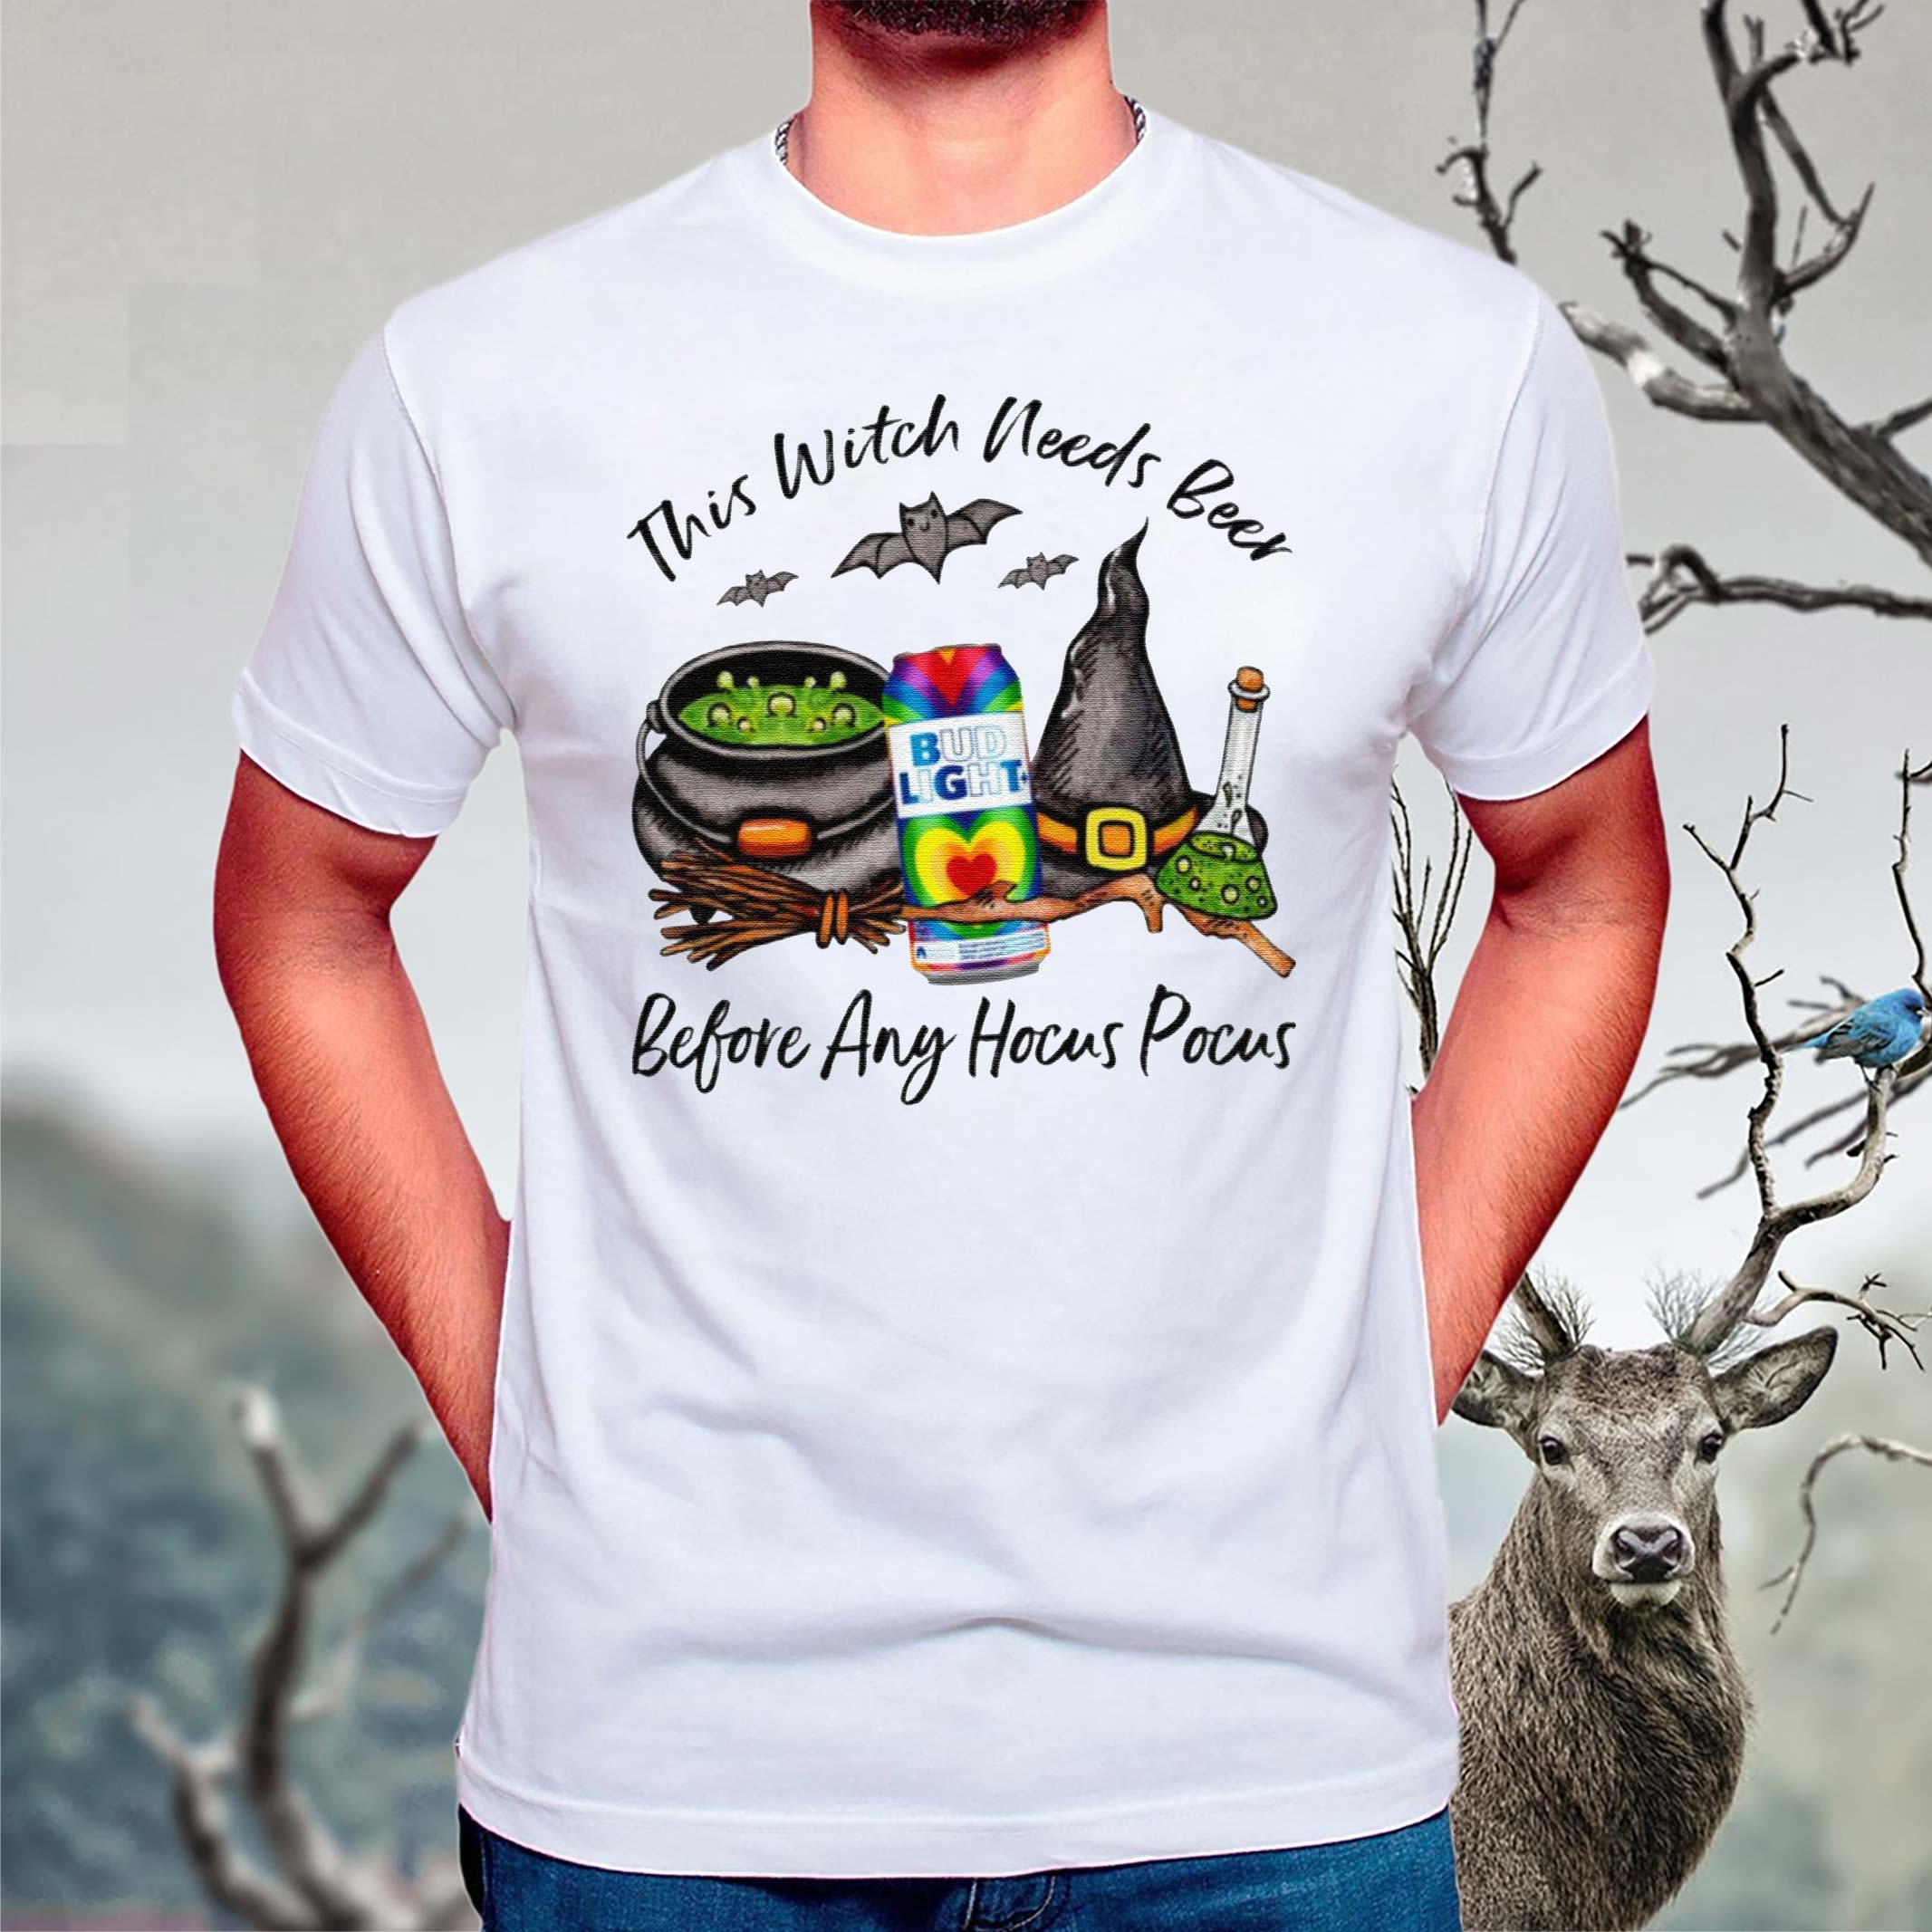 Bud-Light-Rock-Summer-Love-Ale-Can-This-Witch-Needs-Beer-Before-Any-Hocus-Pocus-T-Shirt